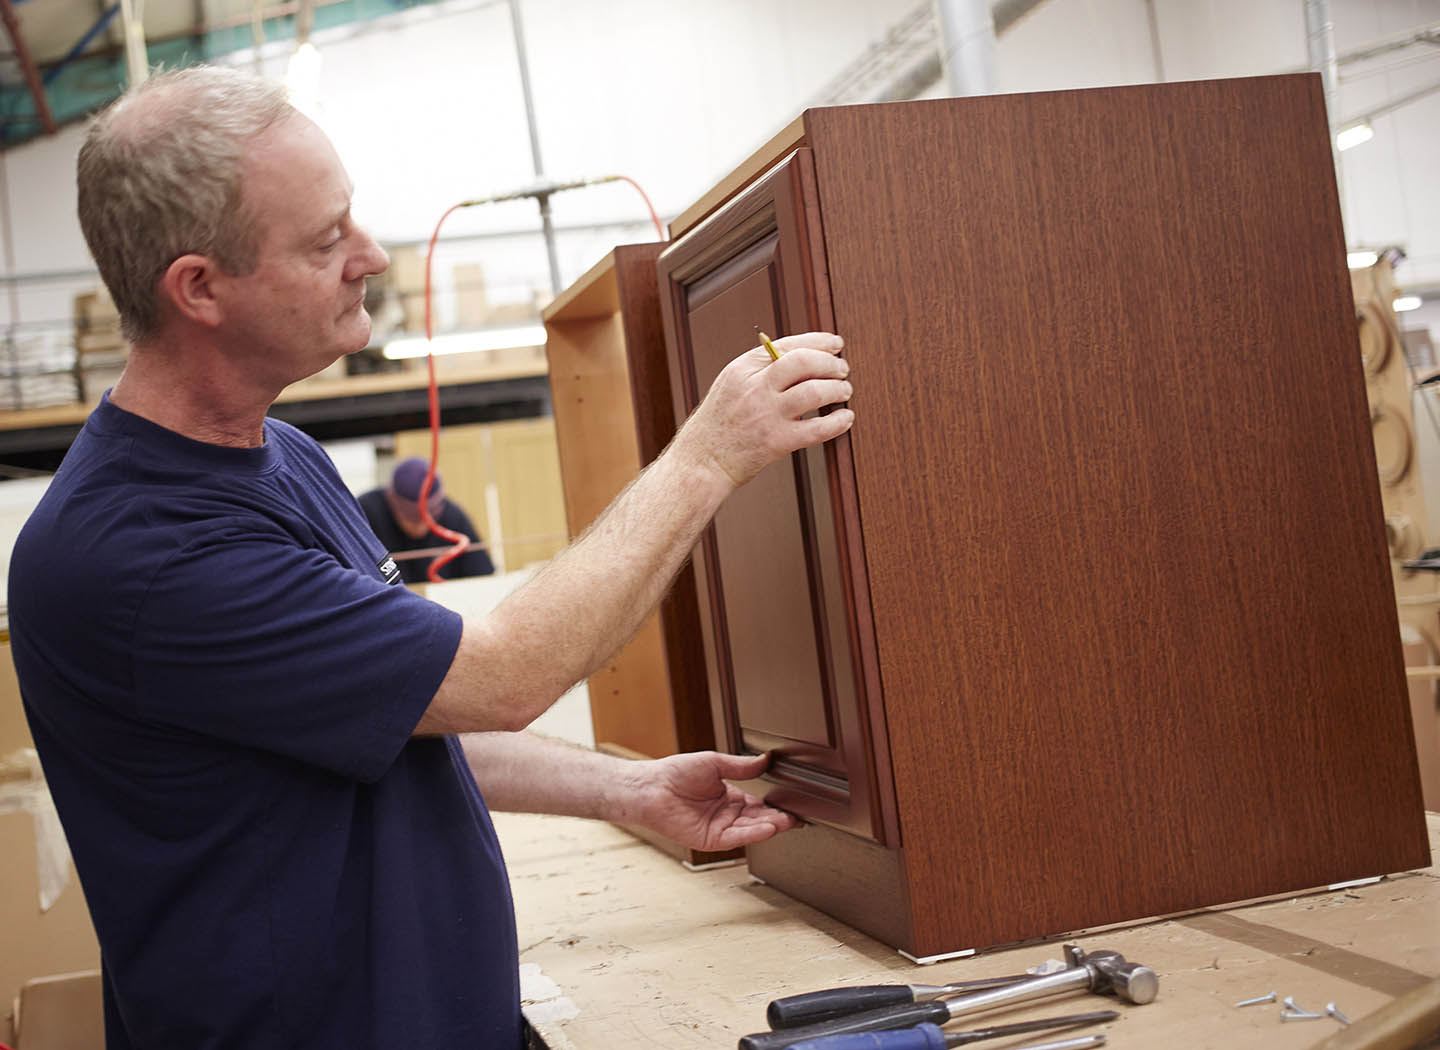 Handcrafting Strachan furniture in our Leeds workshop